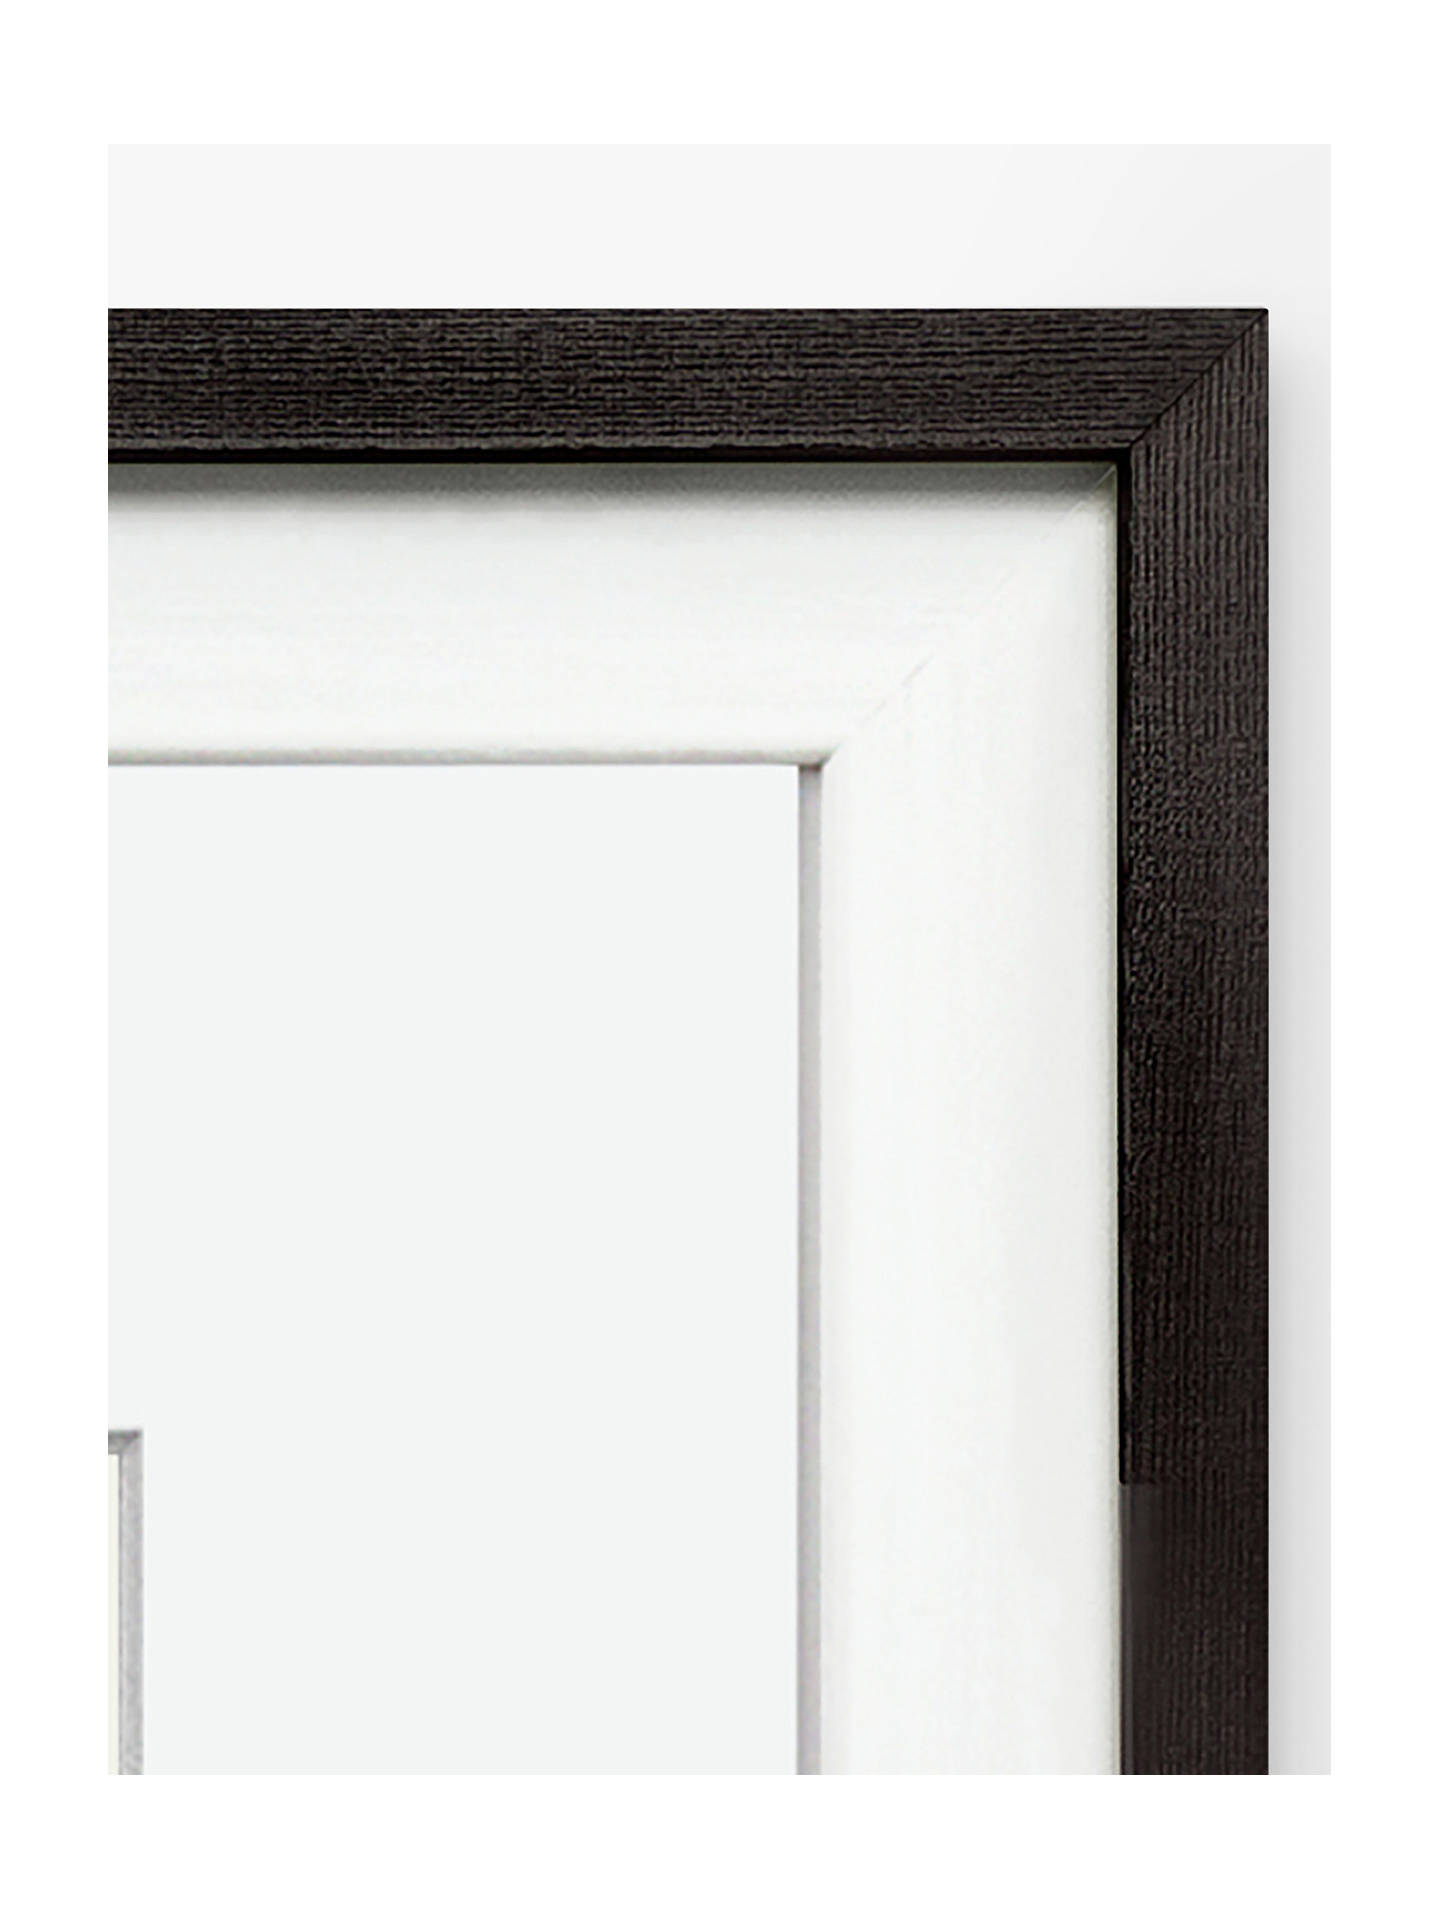 BuyPicasso 'Dove of Peace' Framed Print, 74 x 94cm Online at johnlewis.com